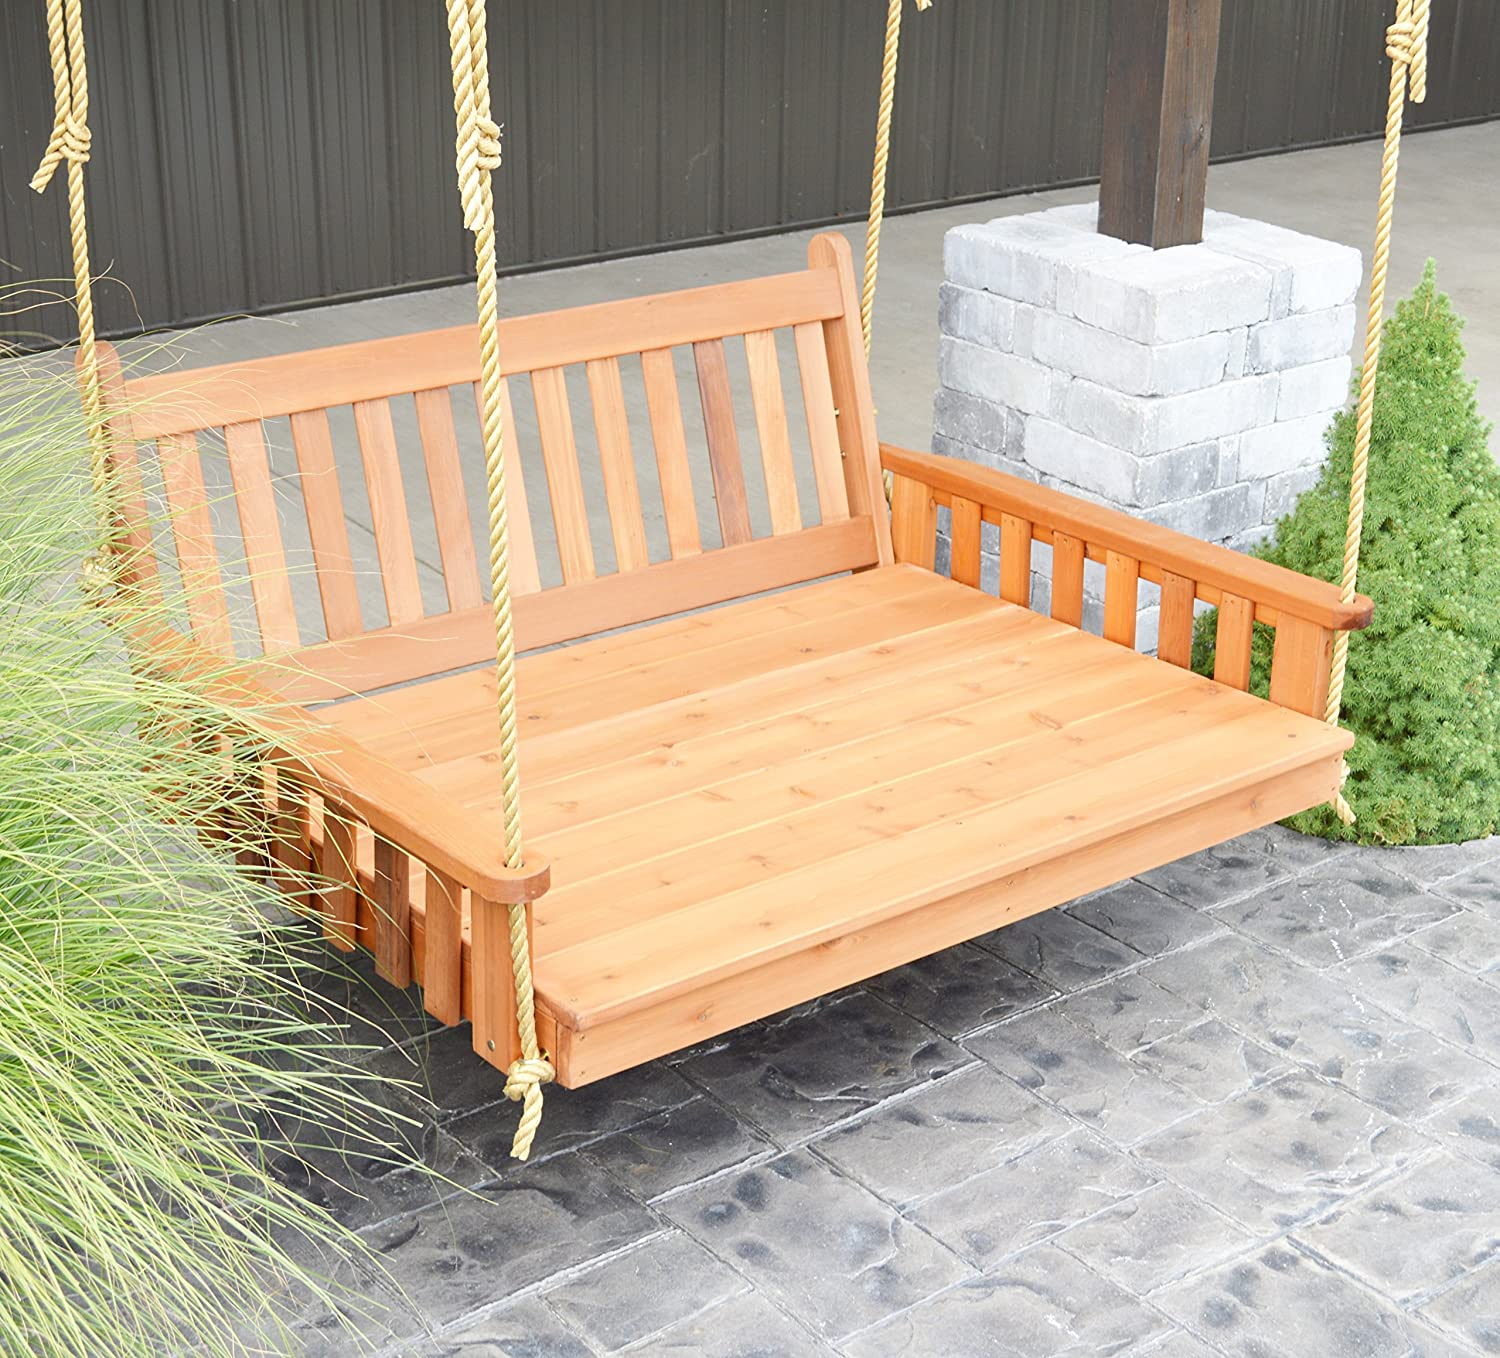 Aspen Tree Interiors Best Porch Swing Bed Outdoor Swinging Daybed Patio Day Bed Swings Hanging 3 Person Bench Unique Western Red Cedar Outside Furniture Decor Traditional 5 Ft Cedar Amazon Ca Patio Lawn